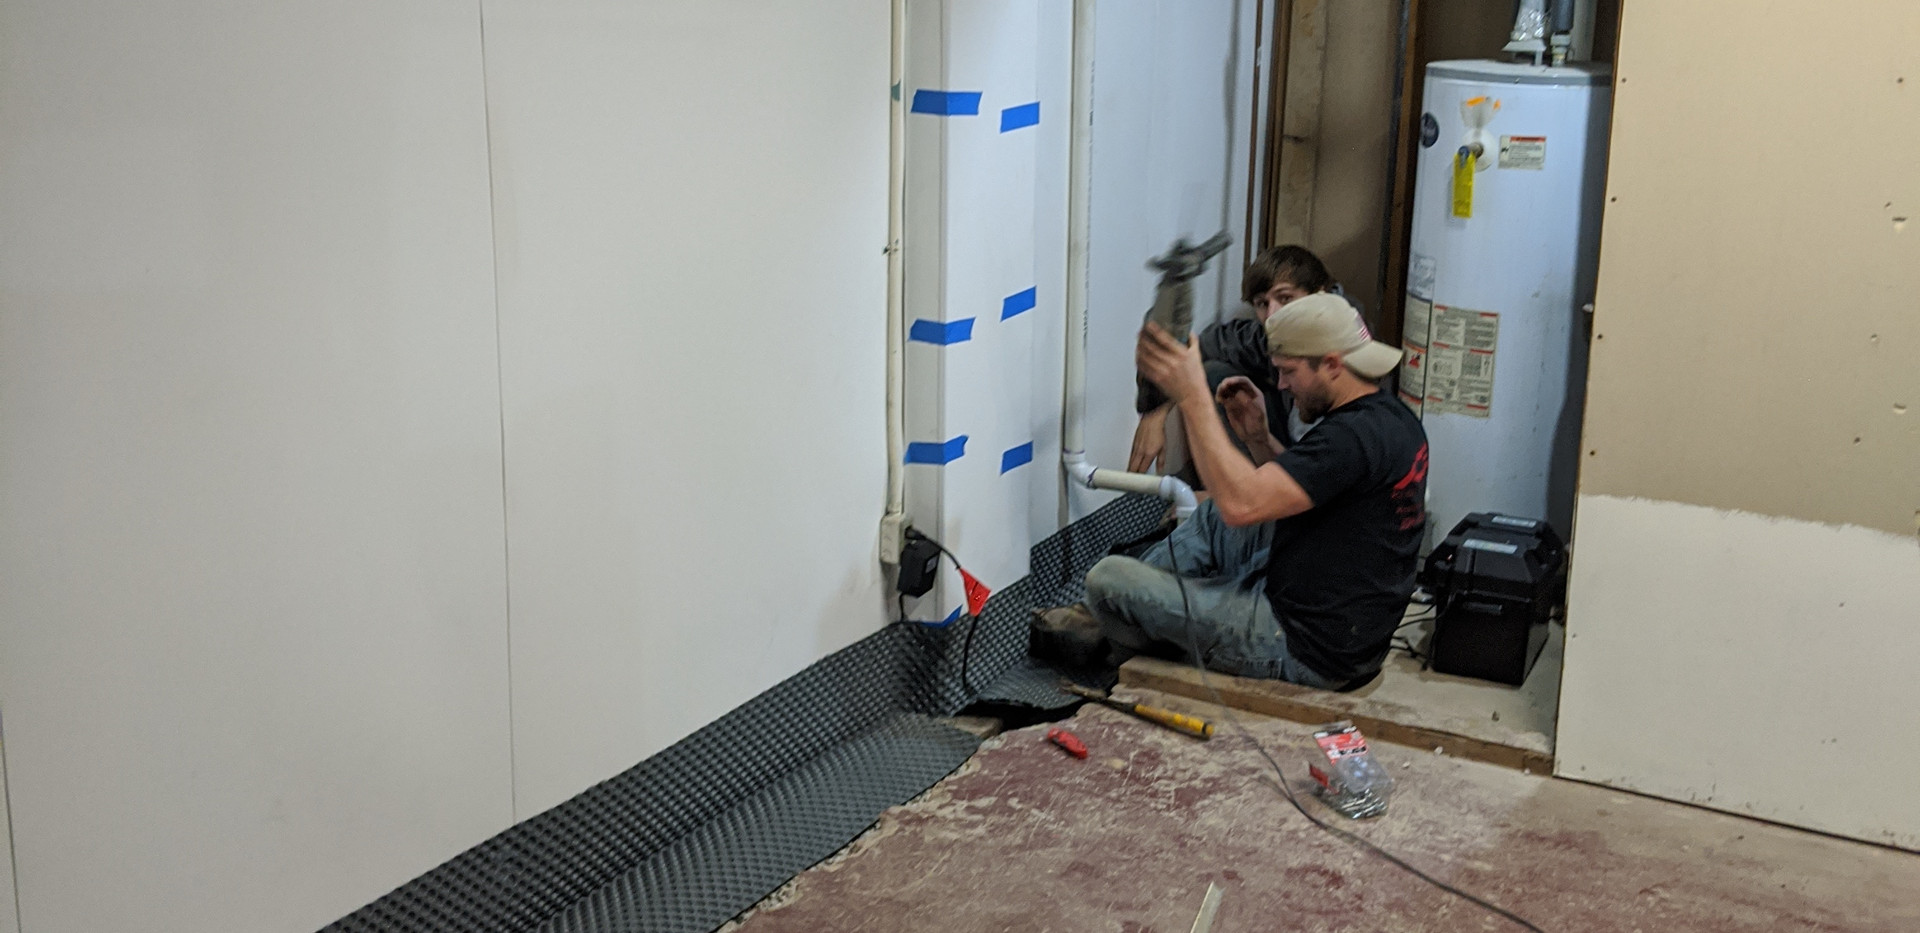 Dimple boarding in a drain tile system installation project